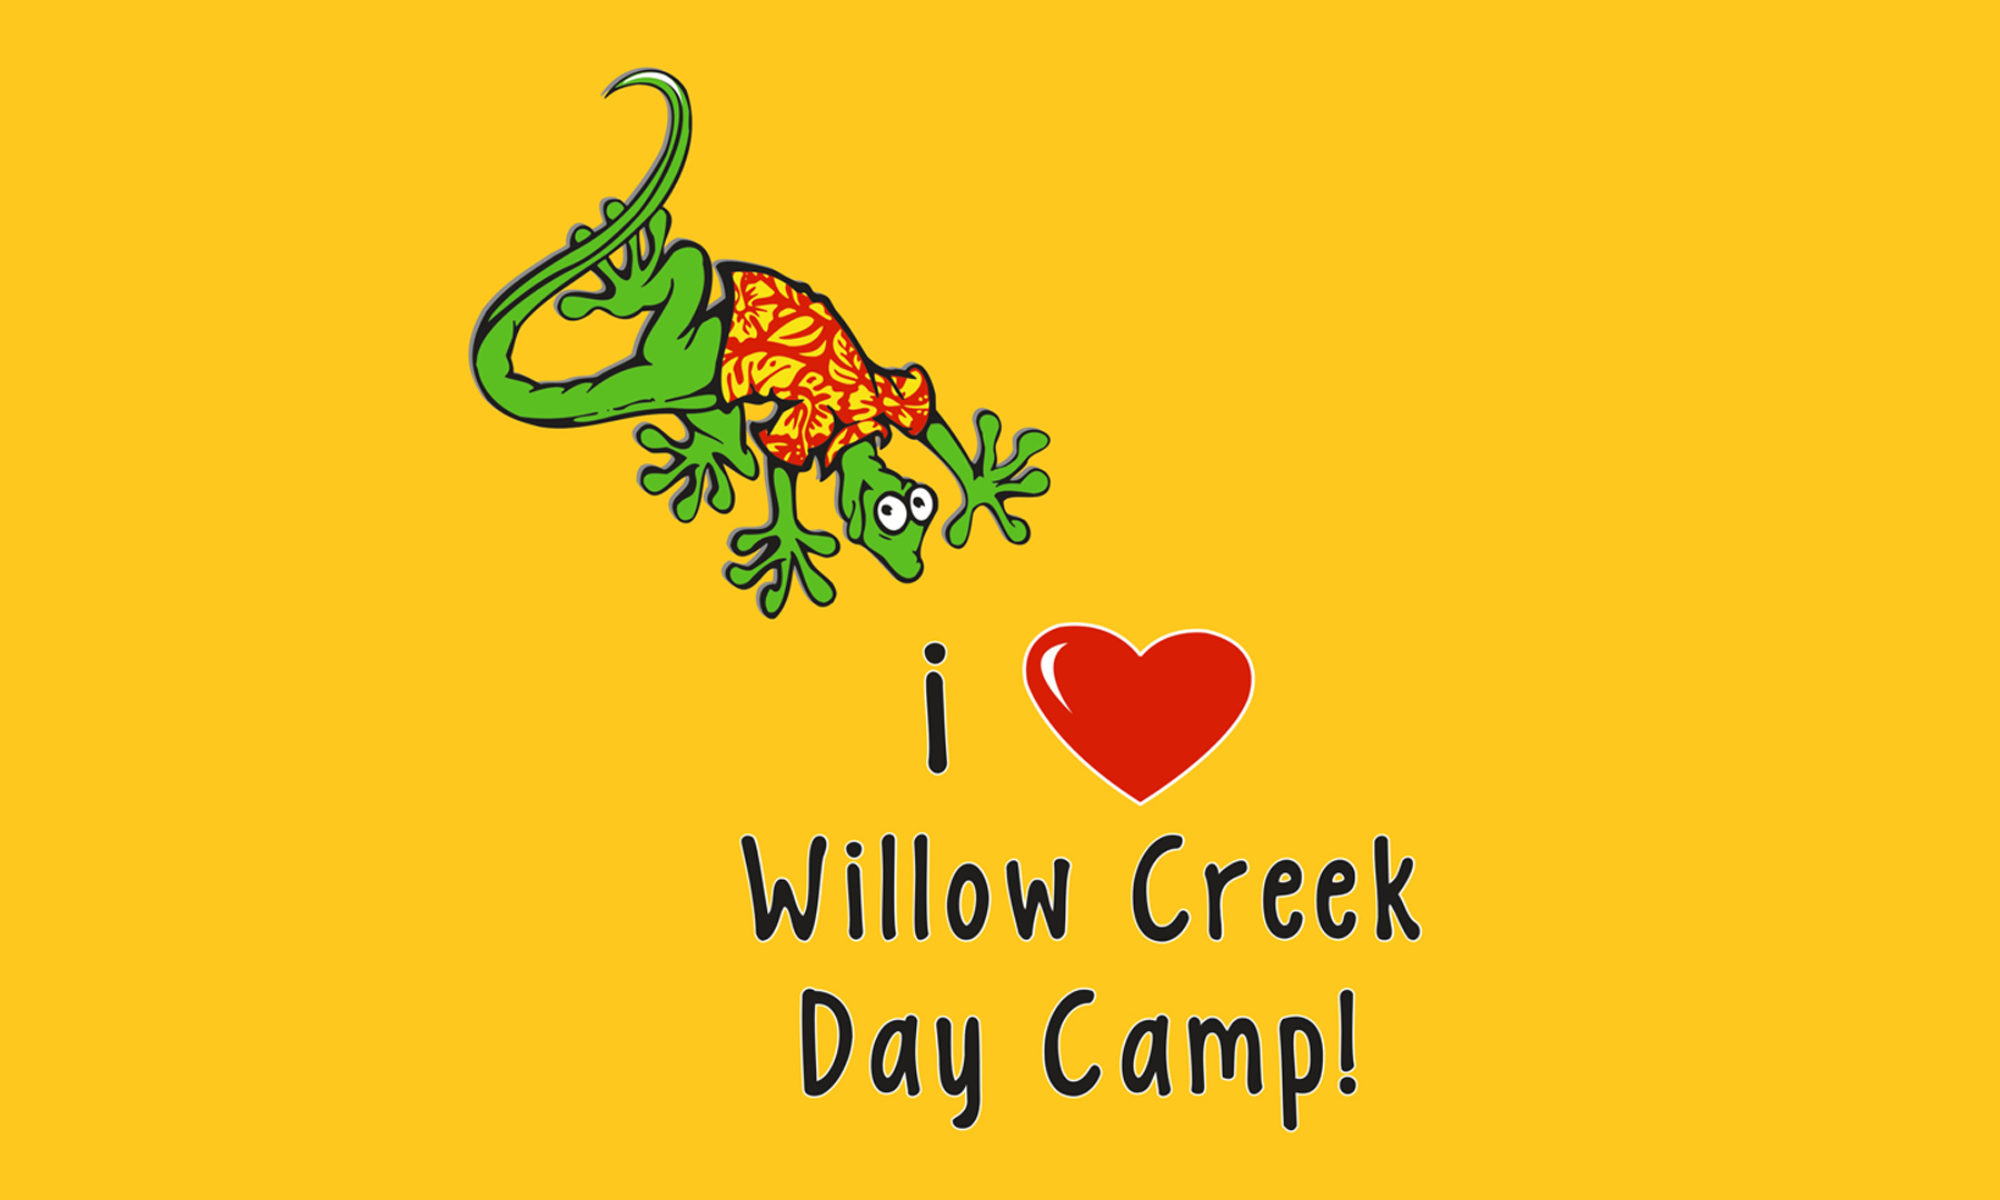 Willow Creek Day Camp